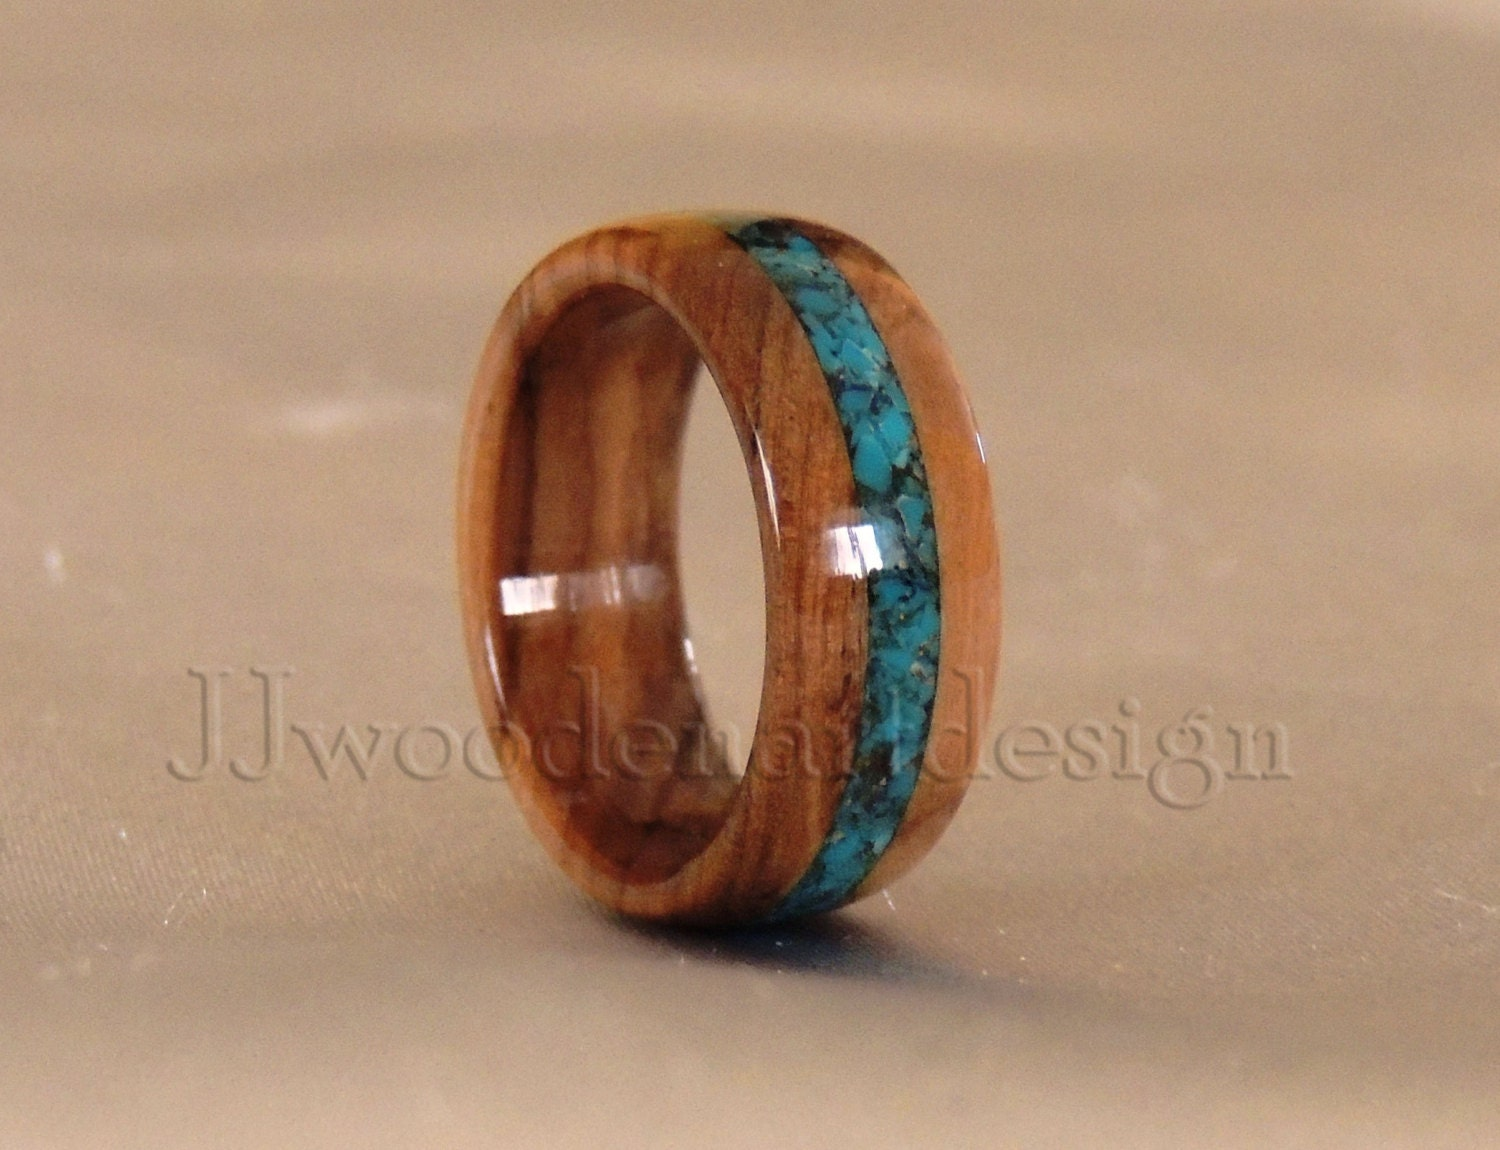 Olive Wood Ring  Turquoise Inlay Wood Ring. Gothic Necklace. Lab Grown Sapphire. Red Line Bracelet. Charm Chains. Marquise Rings. Tom Dixon Pendant. Pretty Anklets. Mission Impossible Watches